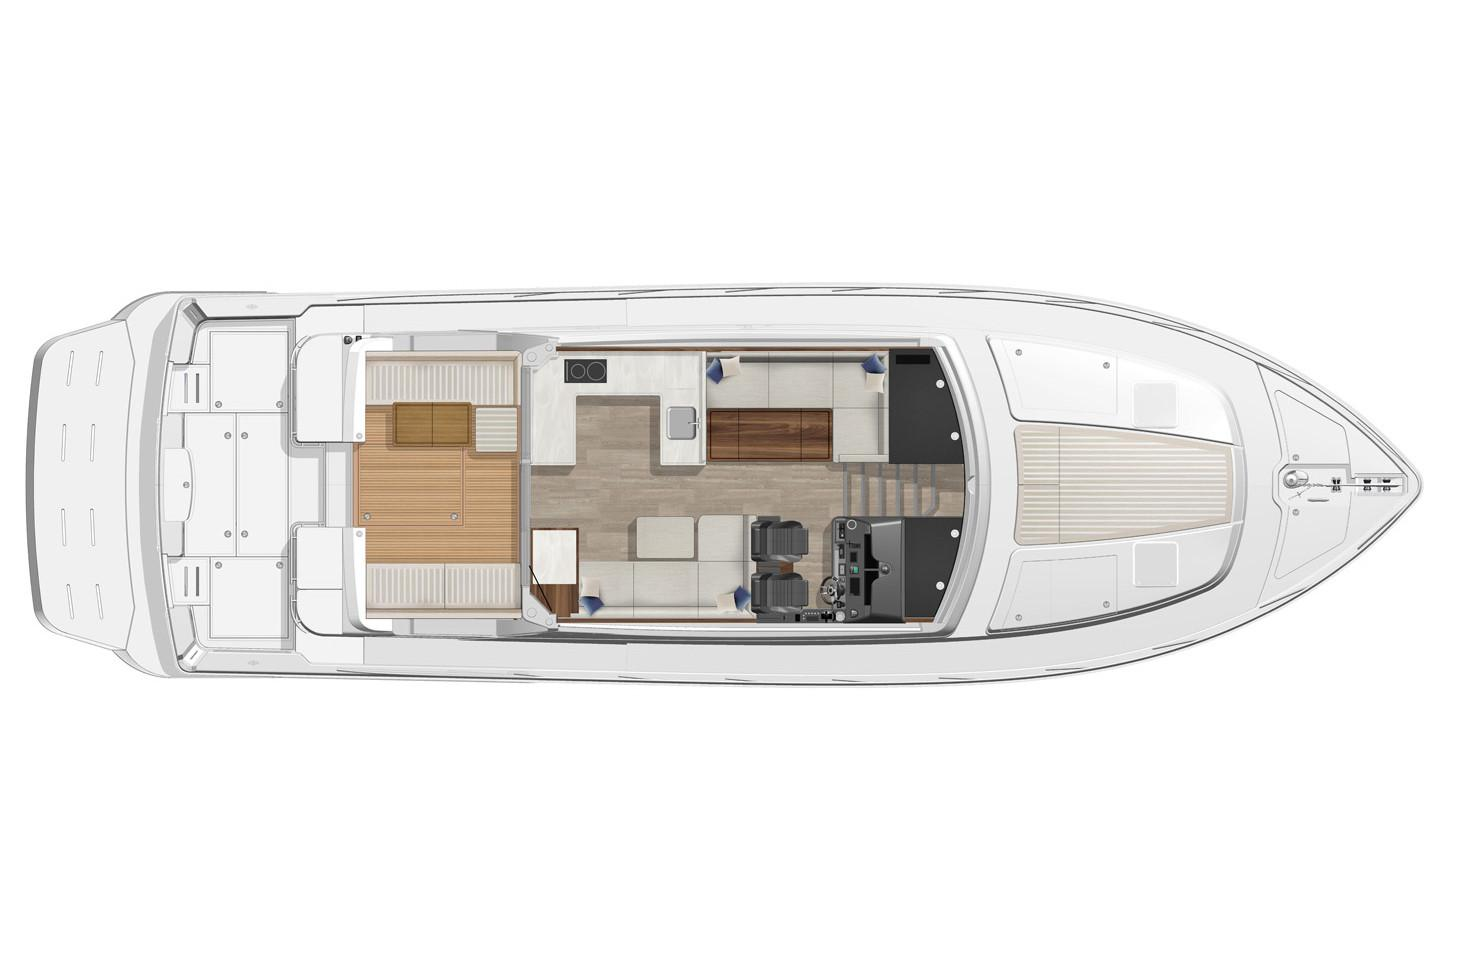 2022 Riviera 505 SUV #R158 inventory image at Sun Country Coastal in San Diego